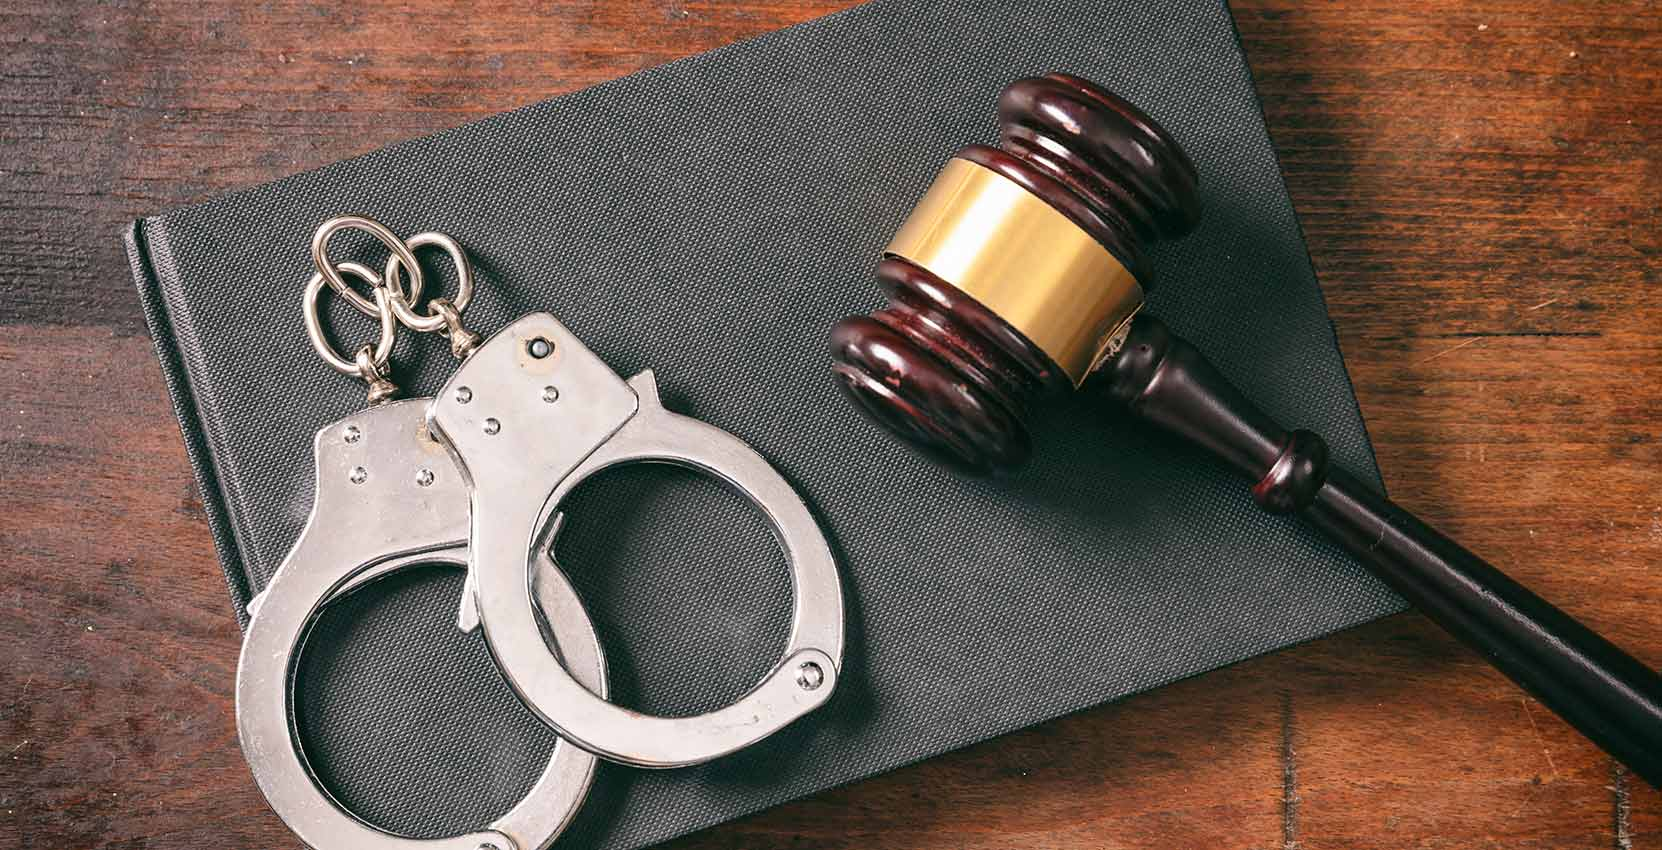 How Do I Get Rid of a Warrant for my Arrest?